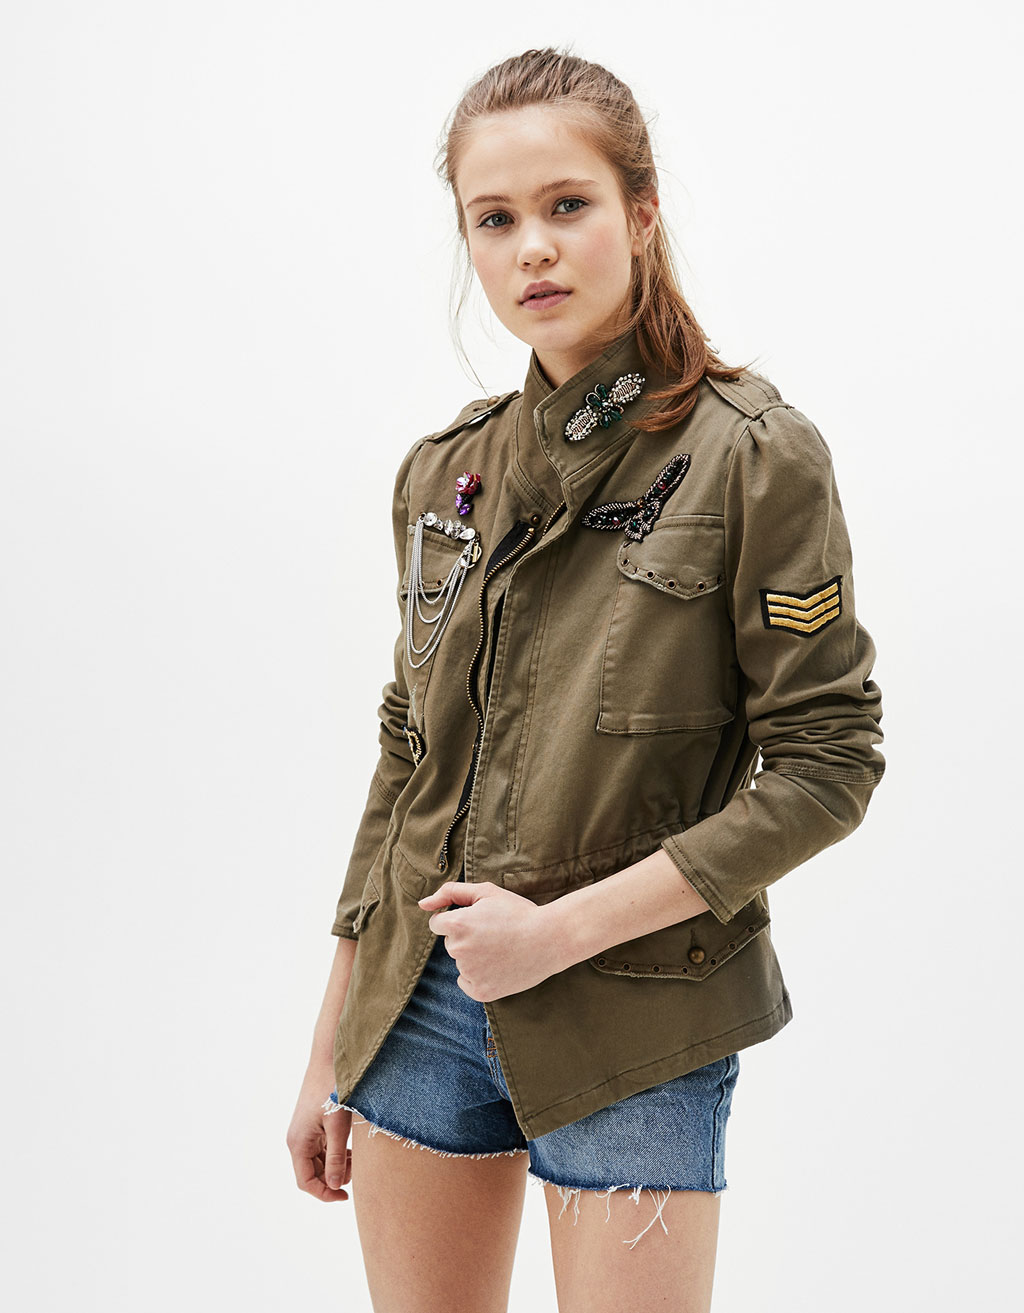 Military jacket with details